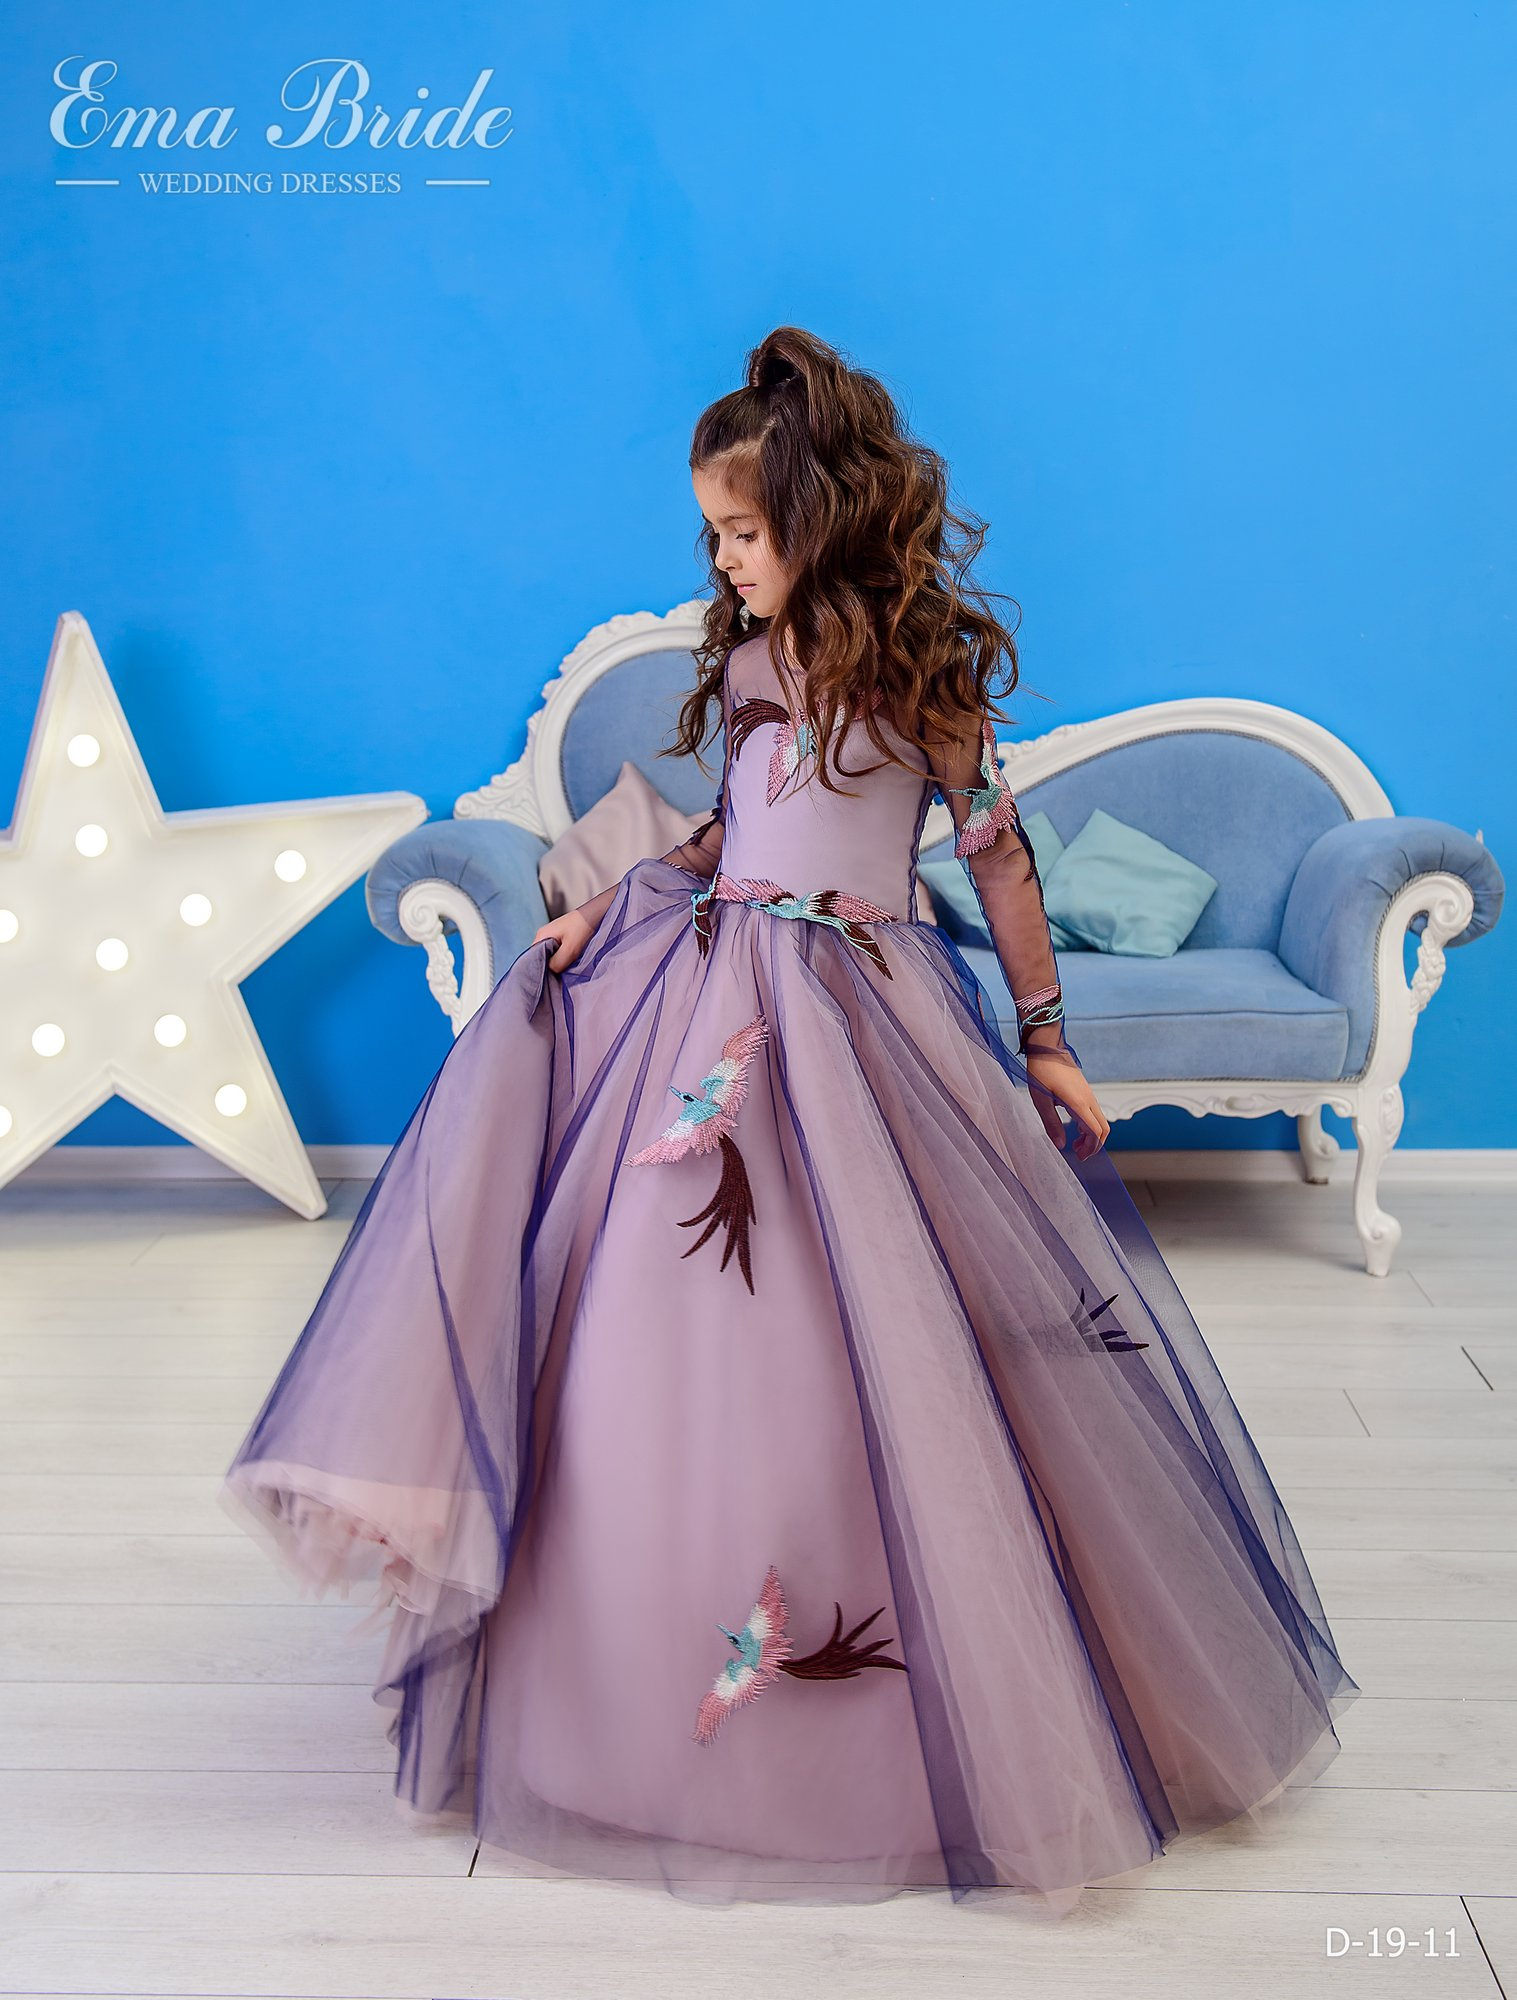 Children's dress by EmaBride D-19-11 2019